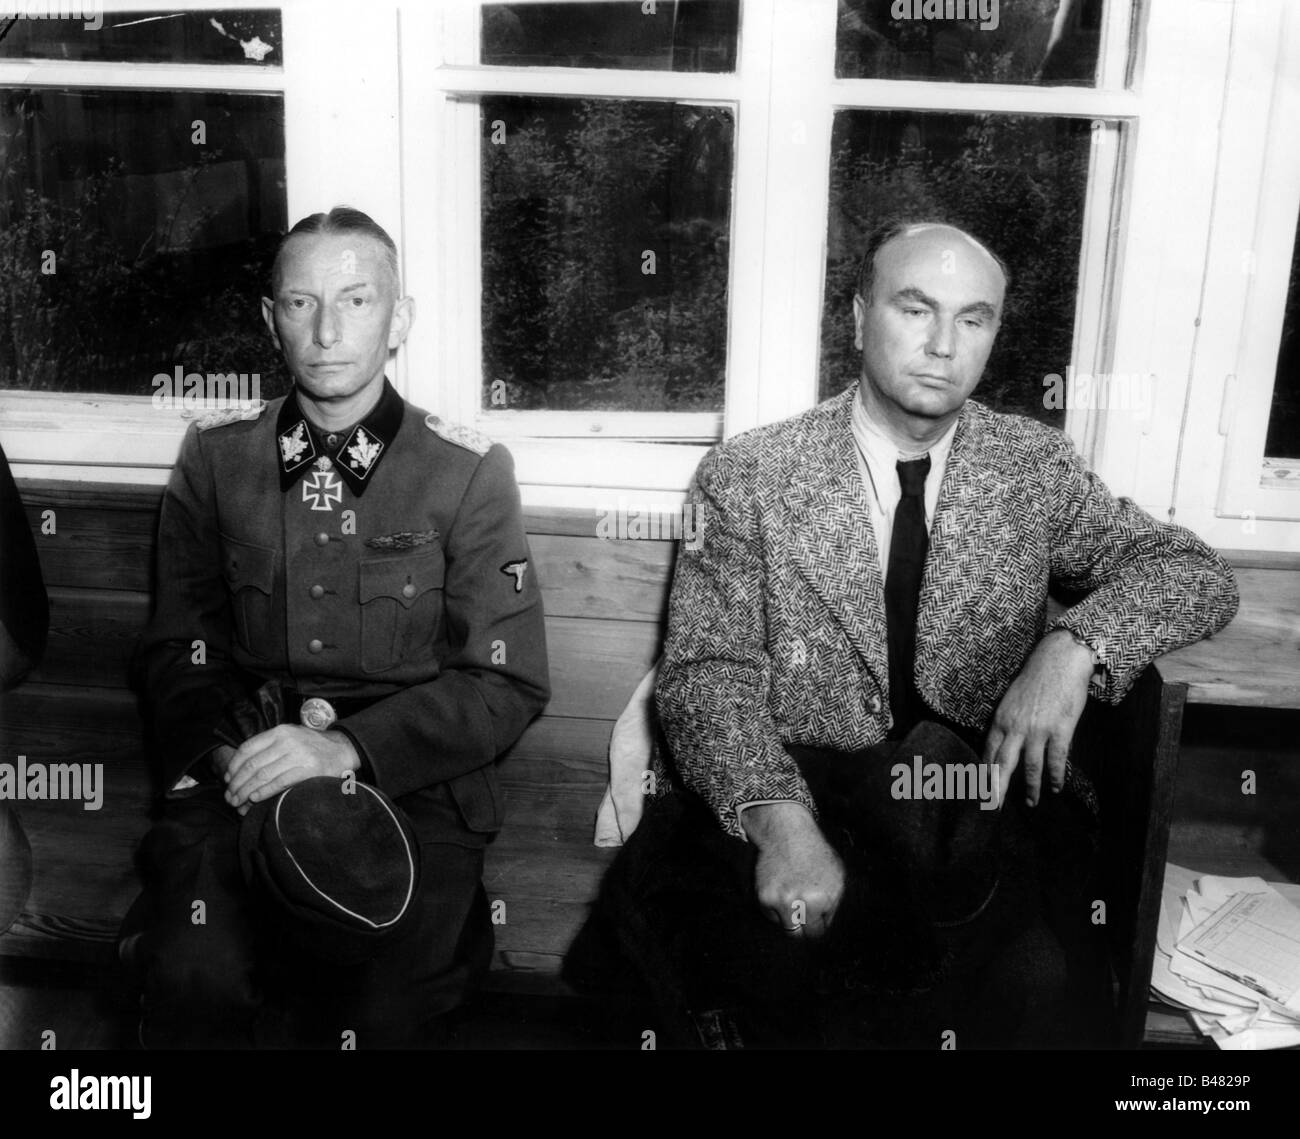 events, Second World War / WWII, Austria, end of war, SS Gruppenfuehrer Heinz Reinefarth and the Reich Governor Stock Photo